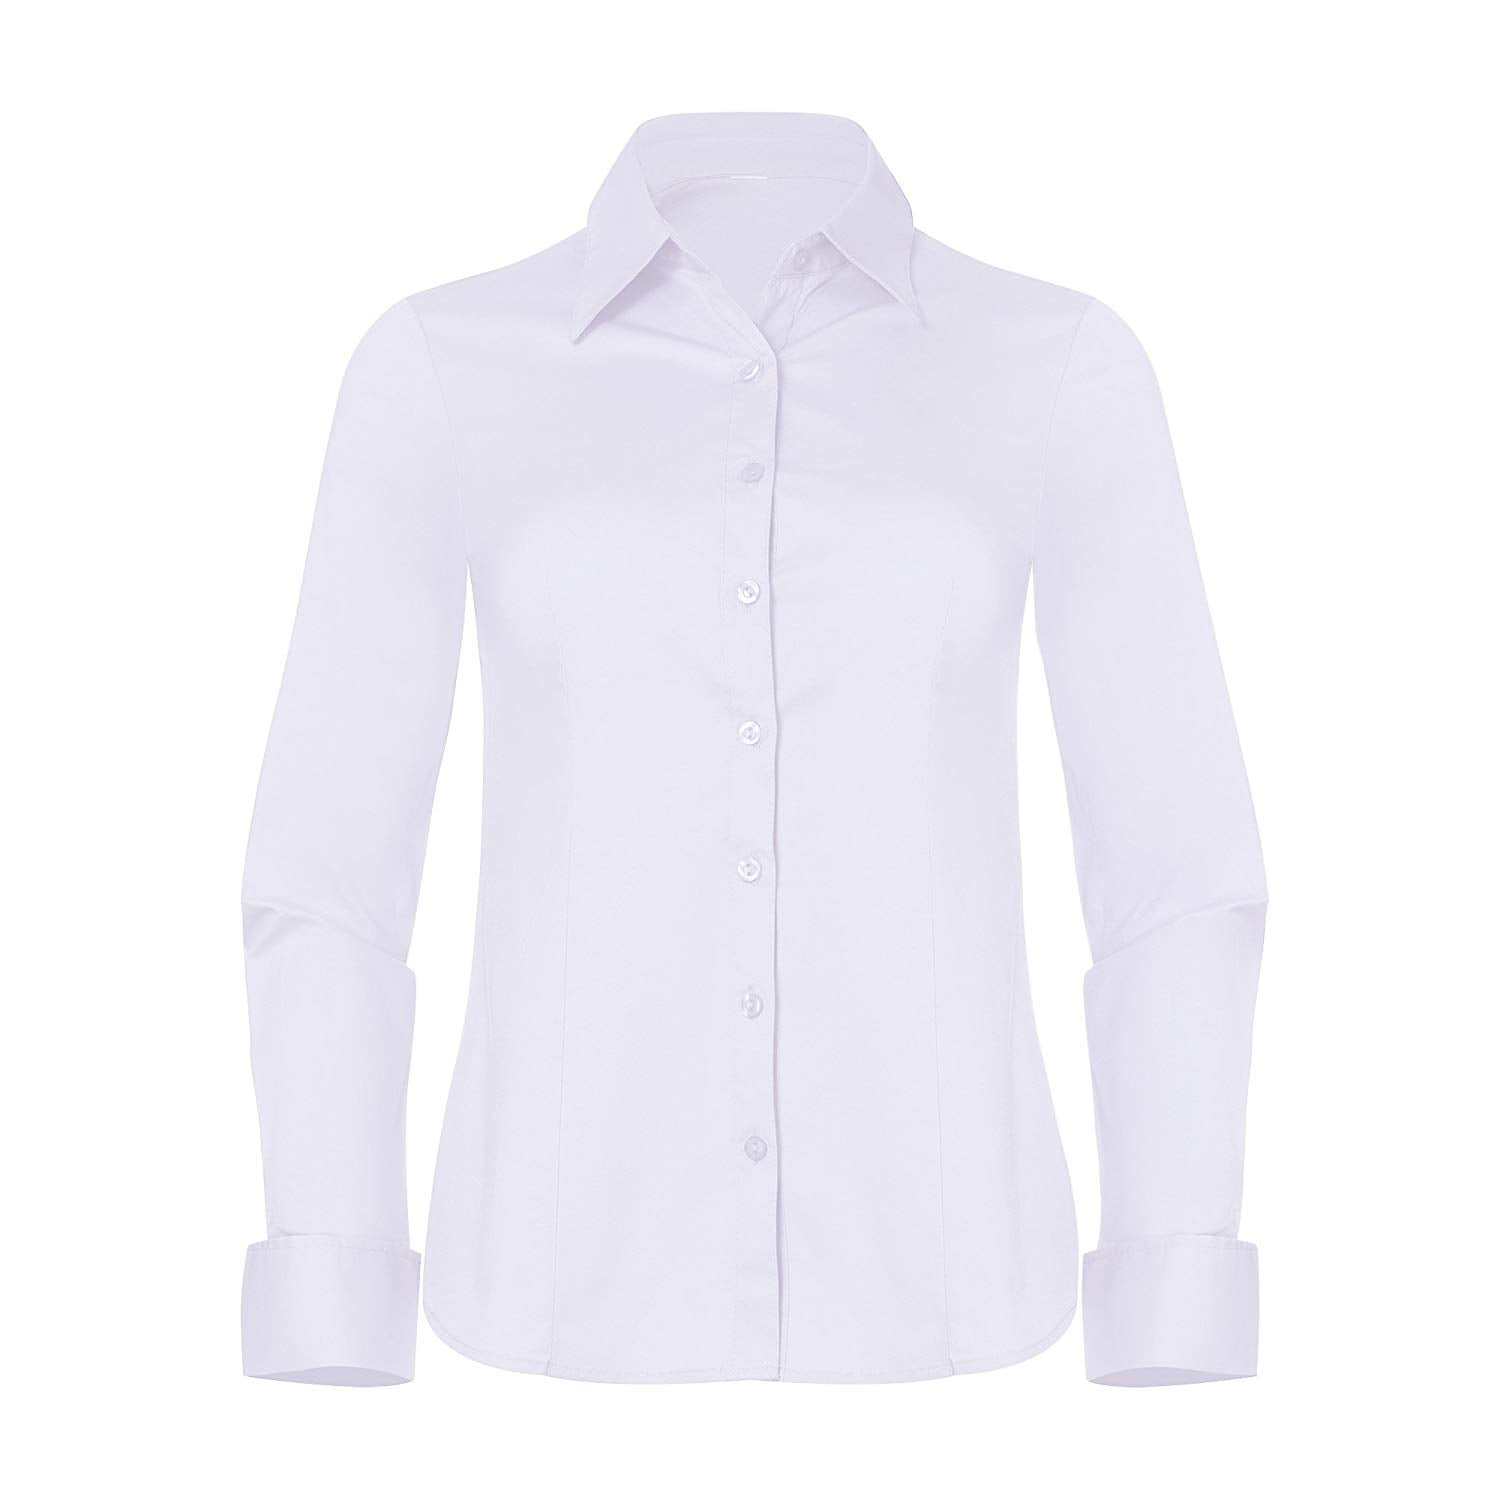 Pier 17 Pier 17 Button Down Shirts For Women Fitted Long Sleeve